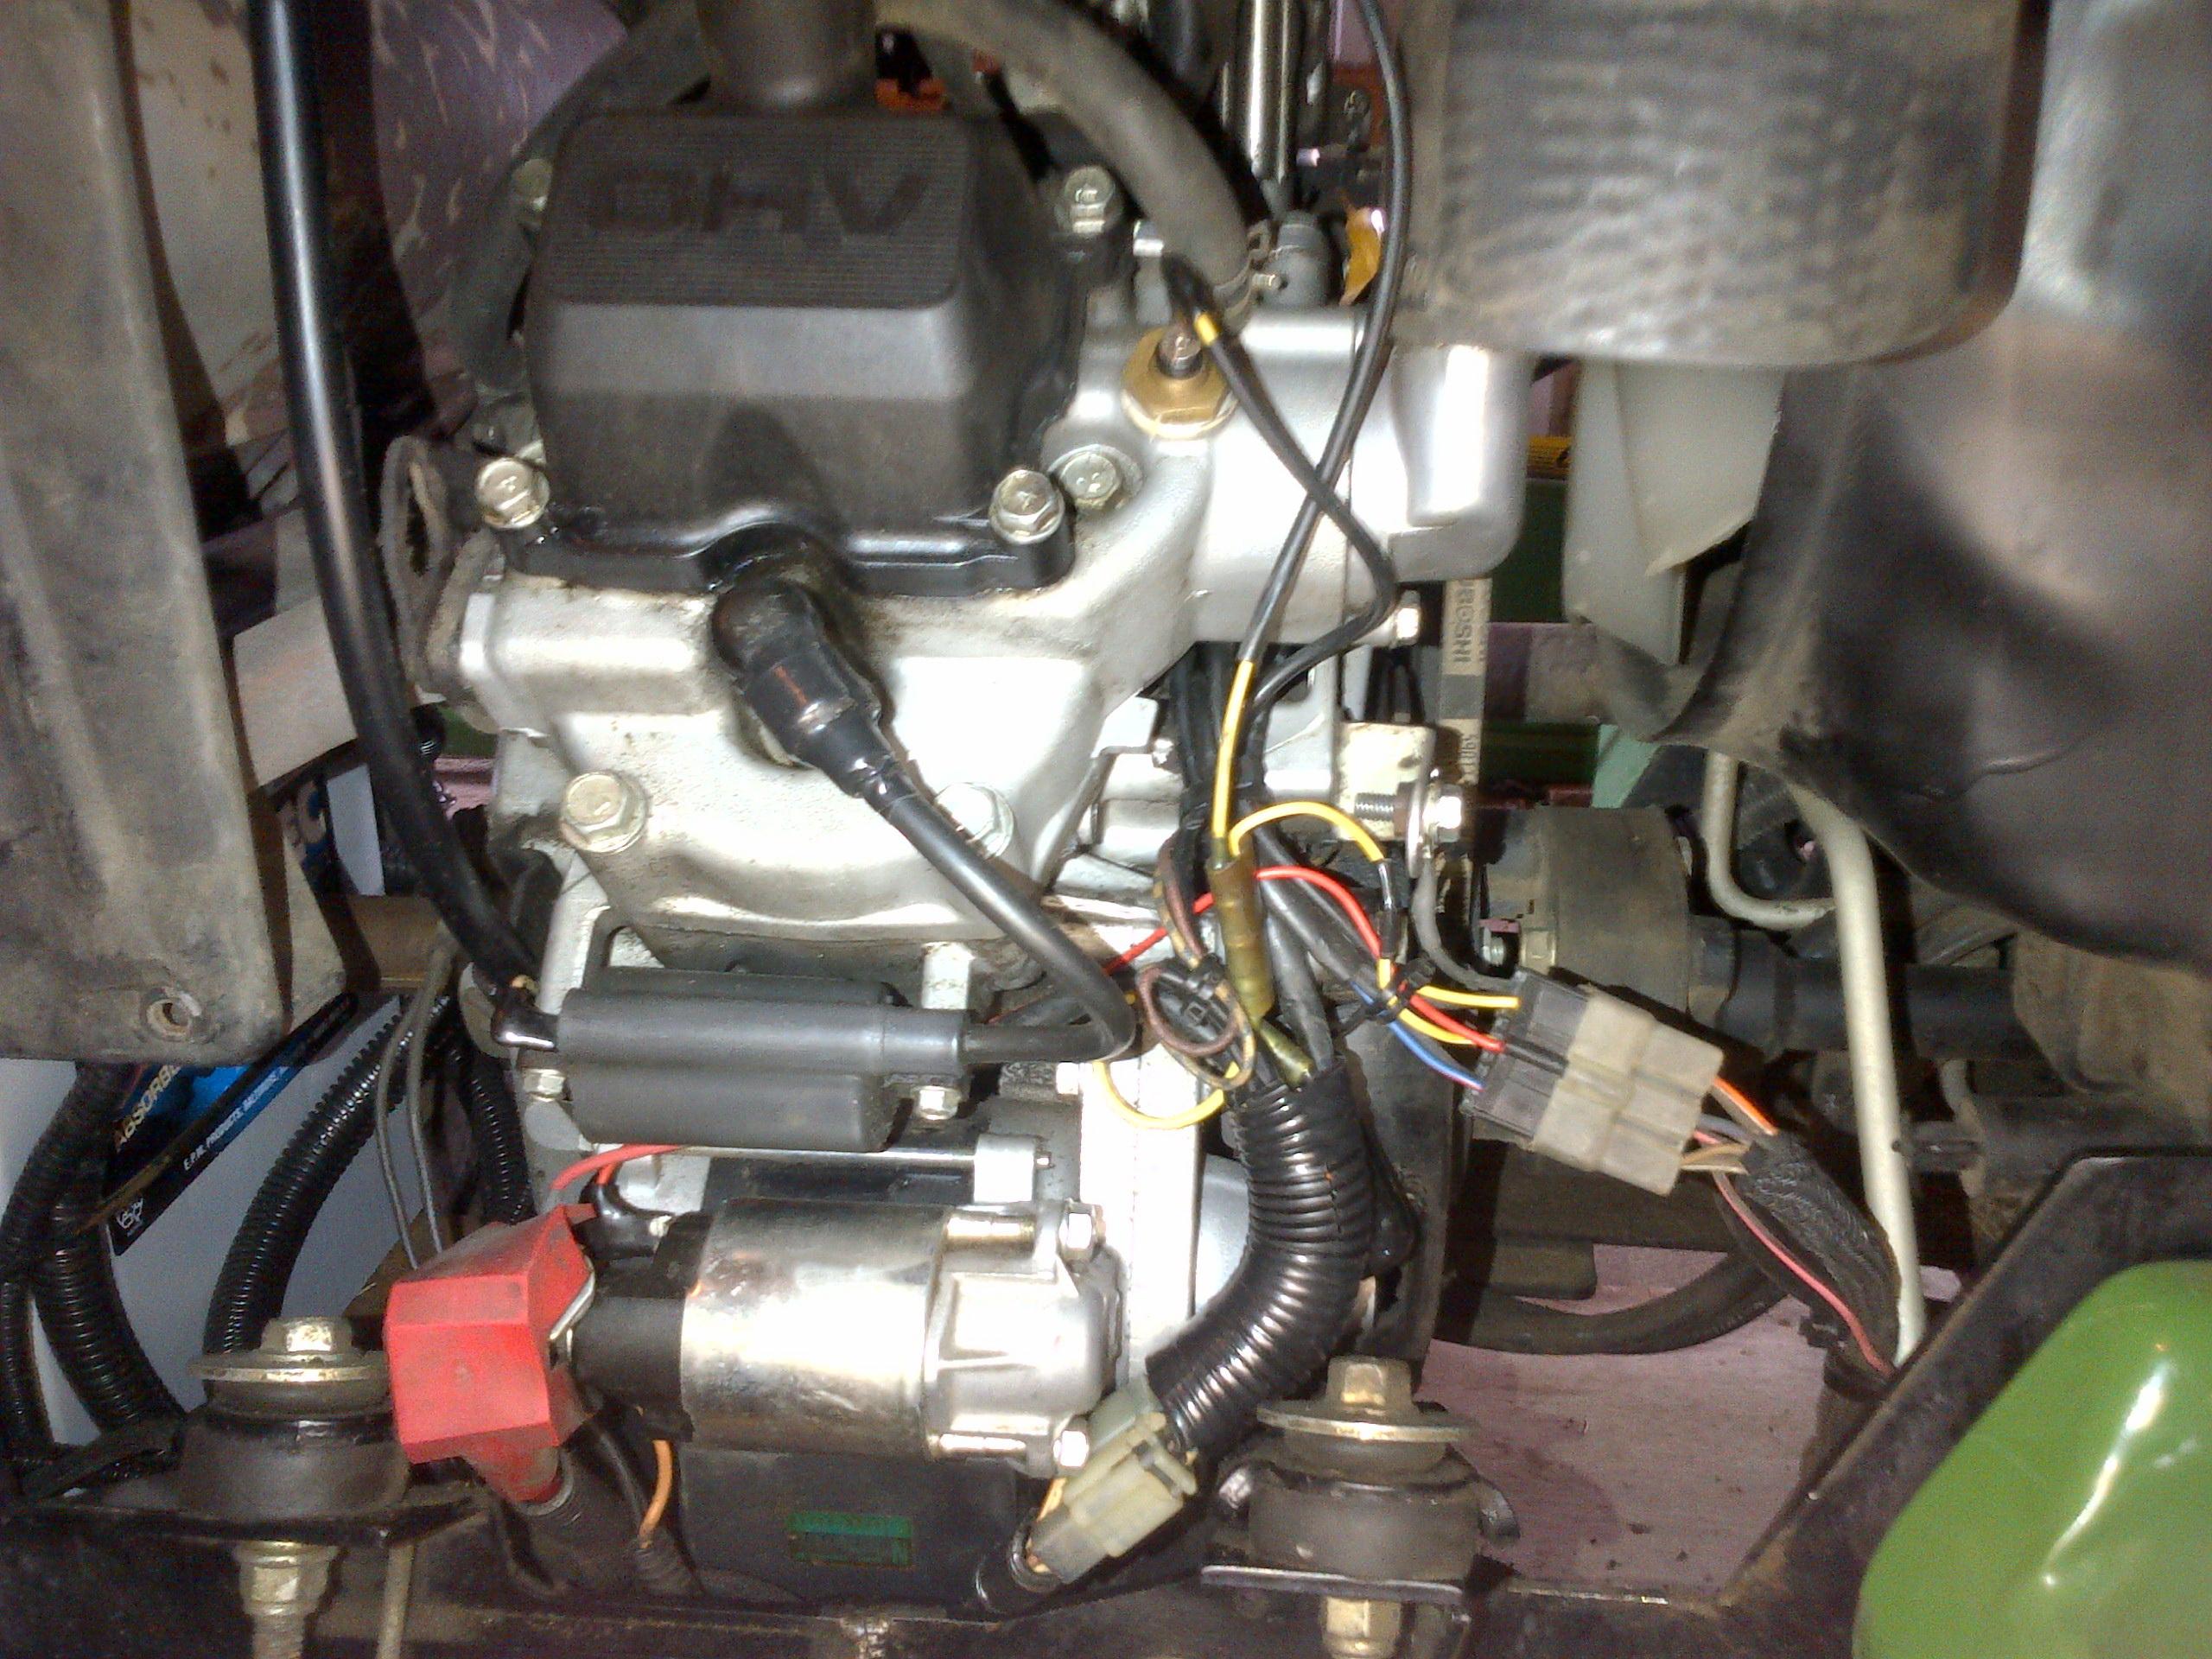 455 coolant temp gauge not working   Page 2   My Tractor Forum on ford starter solenoid wiring, jeep starter solenoid wiring, chrysler starter solenoid wiring, delco starter solenoid wiring, mercury marine starter solenoid wiring,